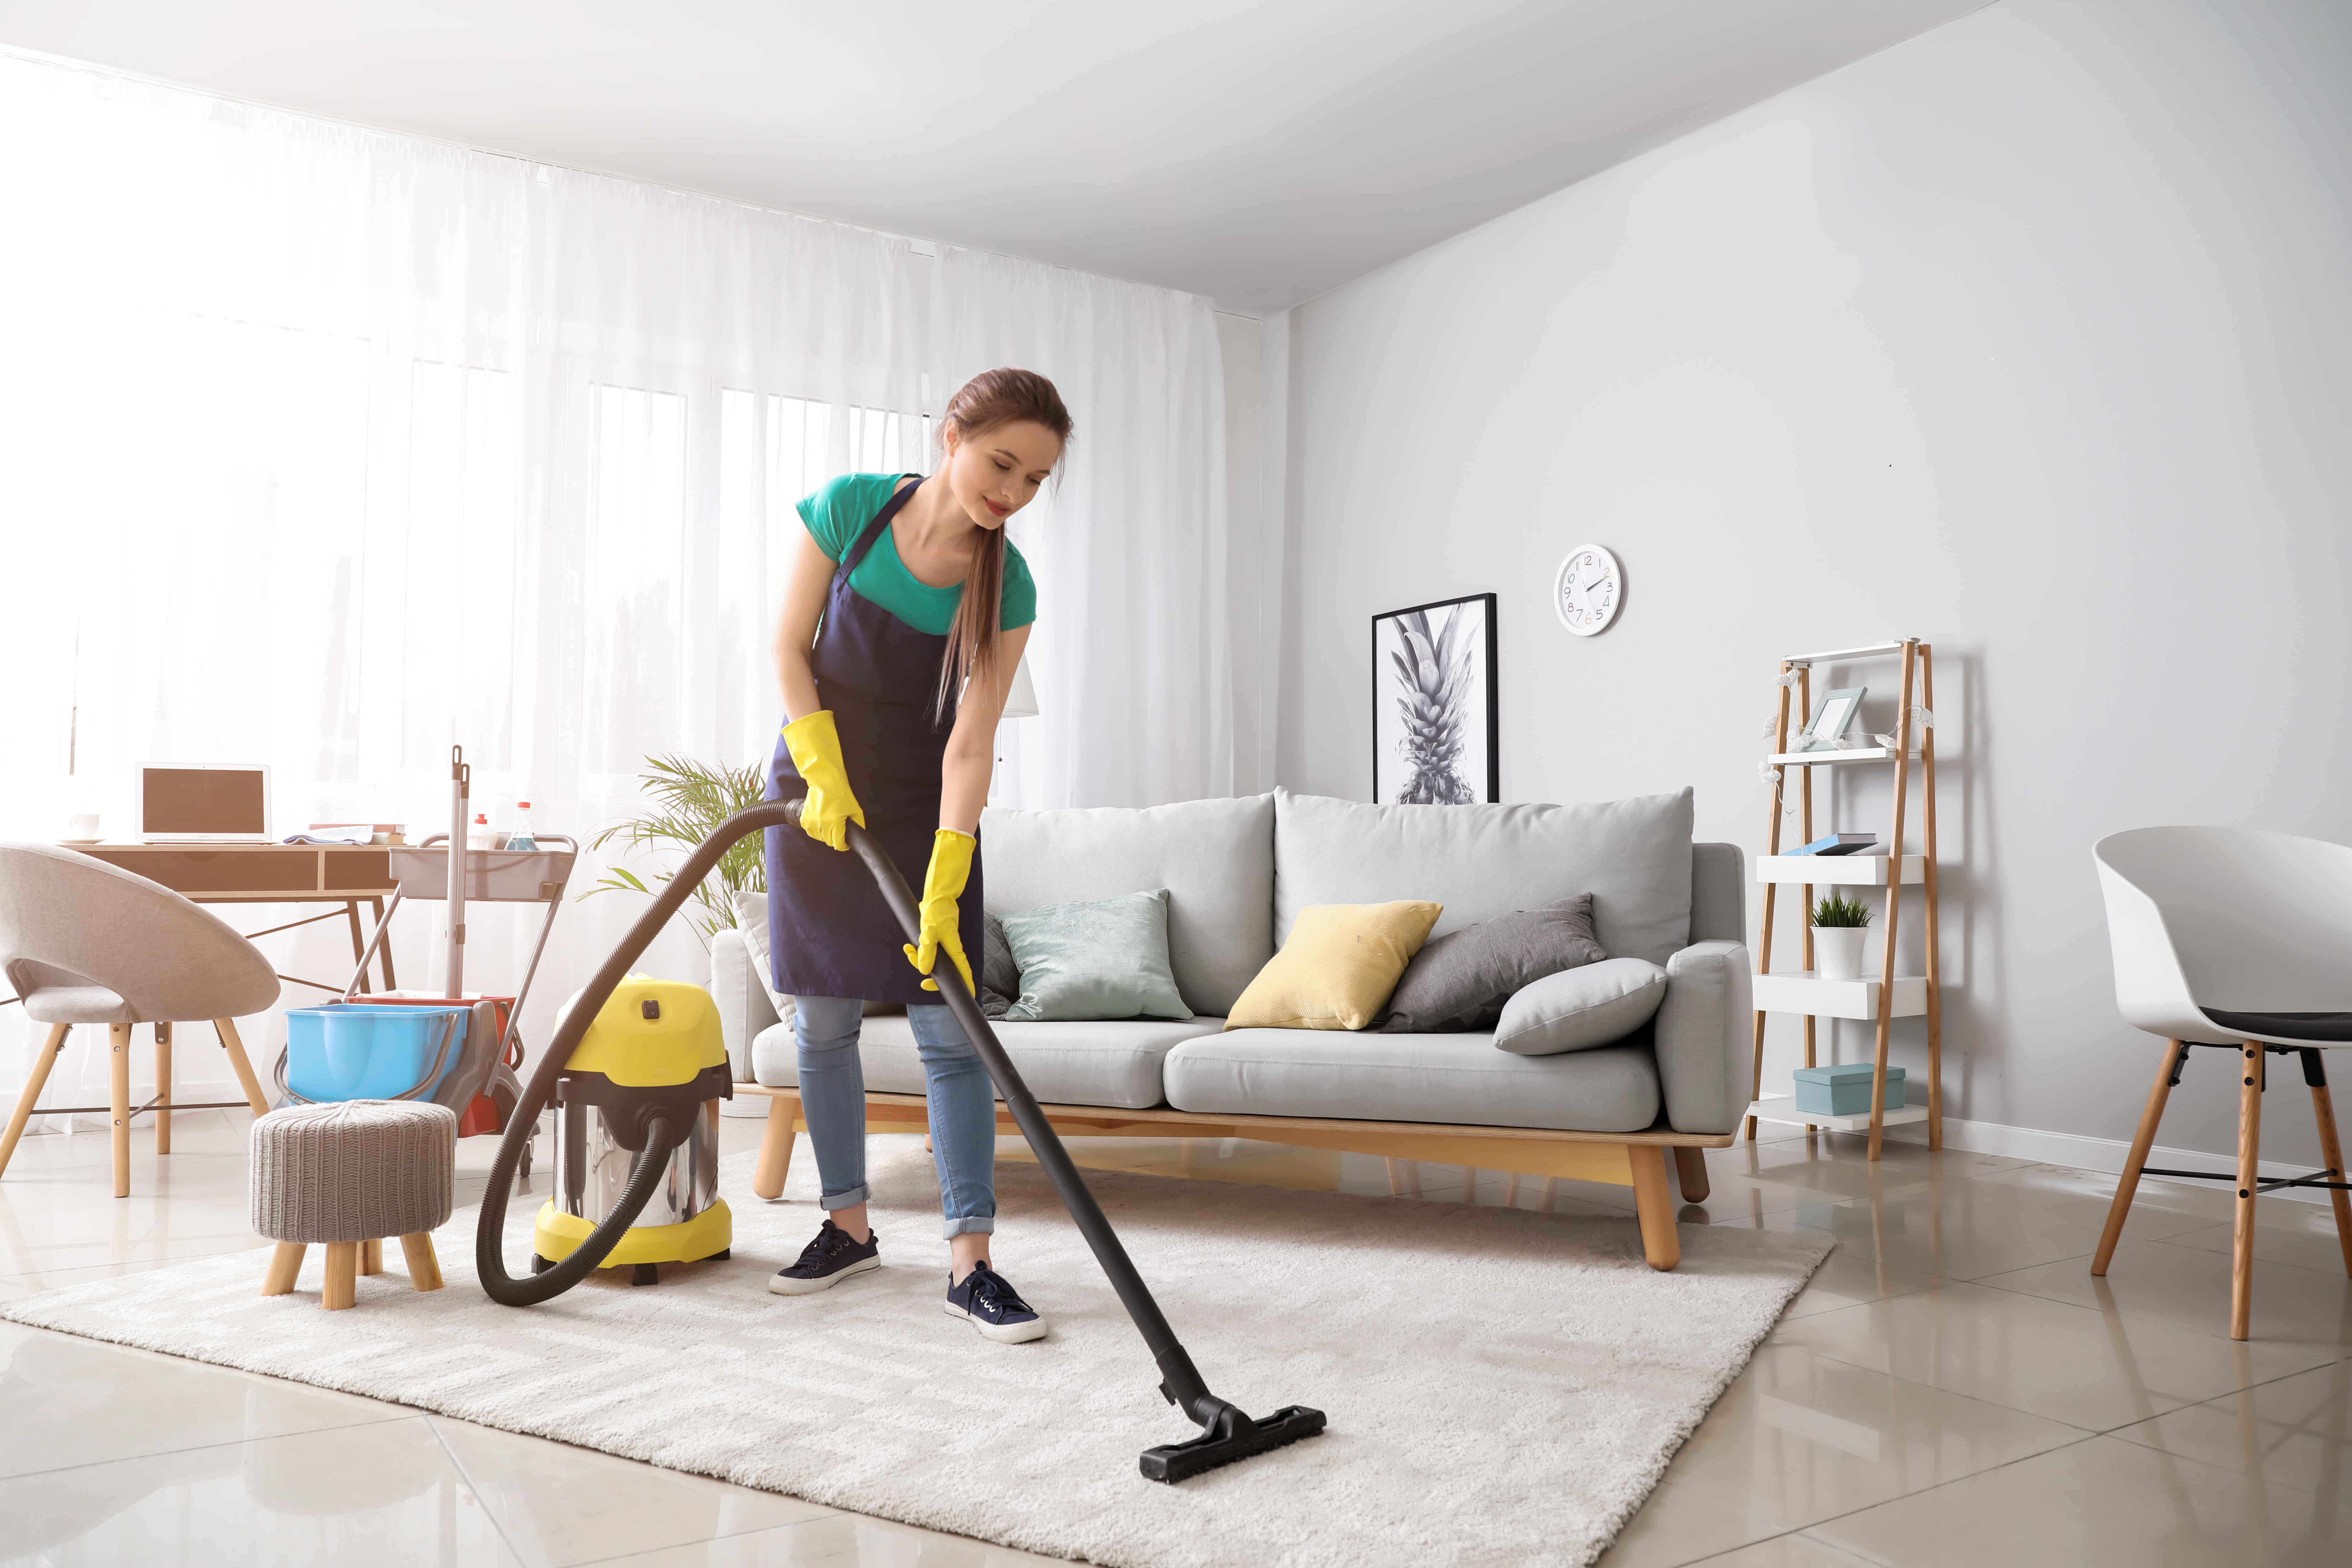 A smiling professional carpet cleaner